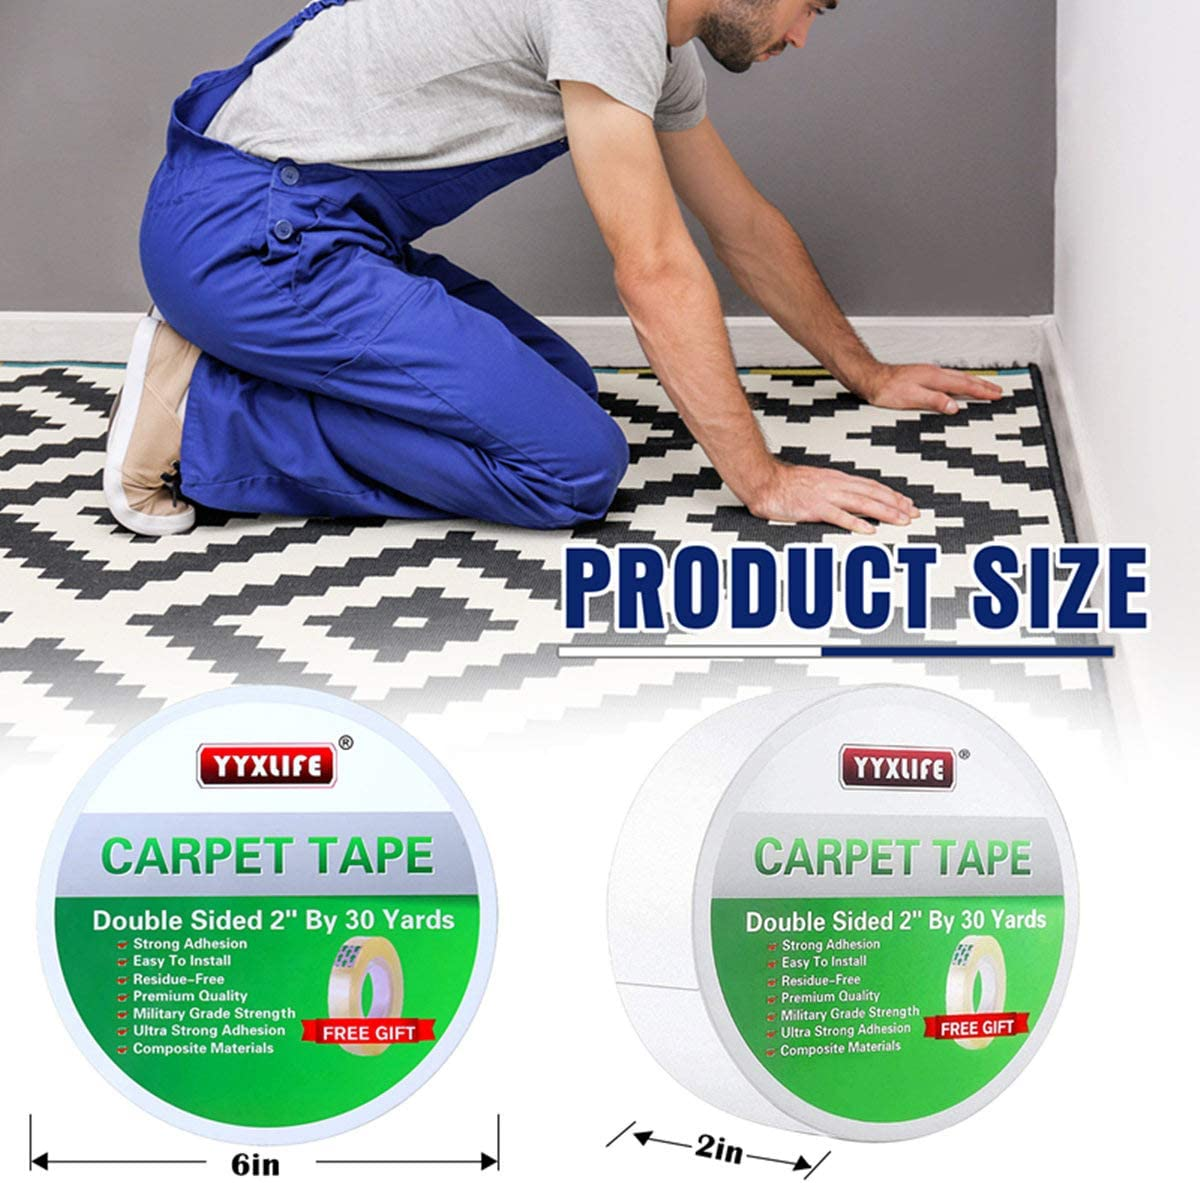 YYXLIFE Rug Tape Double Sided Carpet Heavy Duty Tape Carpet Adhesive Rug Gripper Removable Multi-Purpose Tape Cloth For Area Rugs, Outdoor Rugs, Carpets.Tape Carpet Adhesive, 2 Inch X 30 Yards, White - -